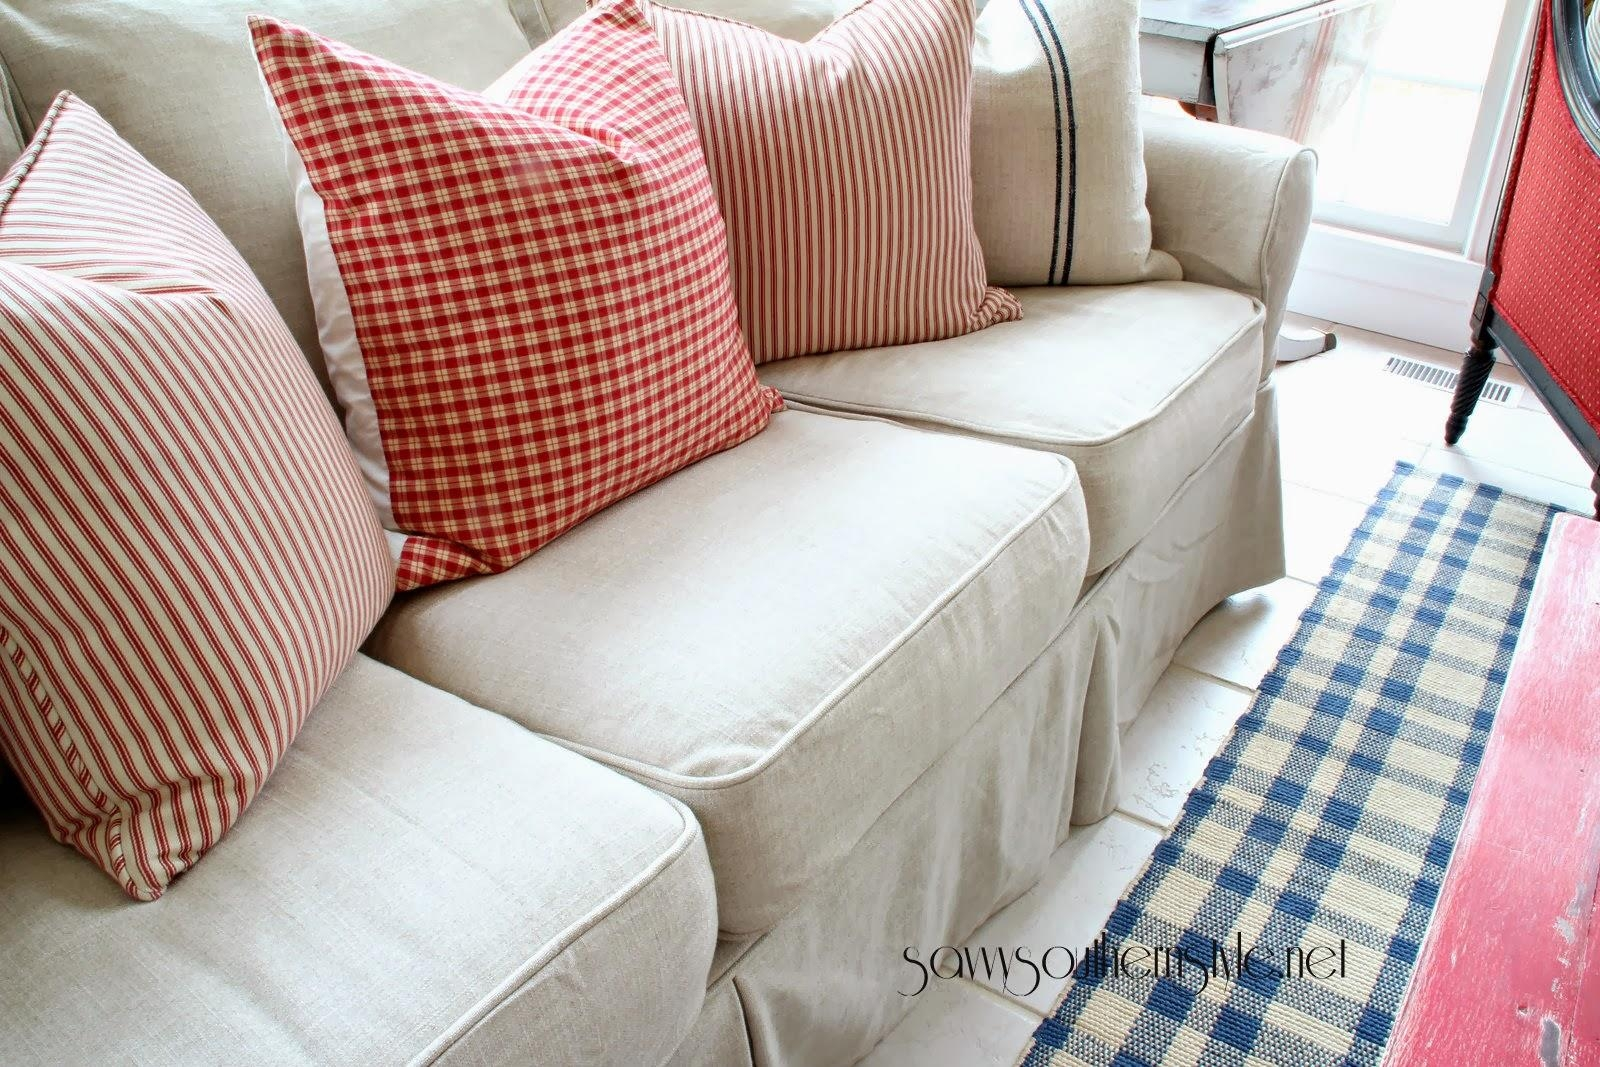 Custom Slipcovers And Couch Cover For Any Sofa Online Throughout Slipcovers For Sleeper Sofas (View 20 of 20)